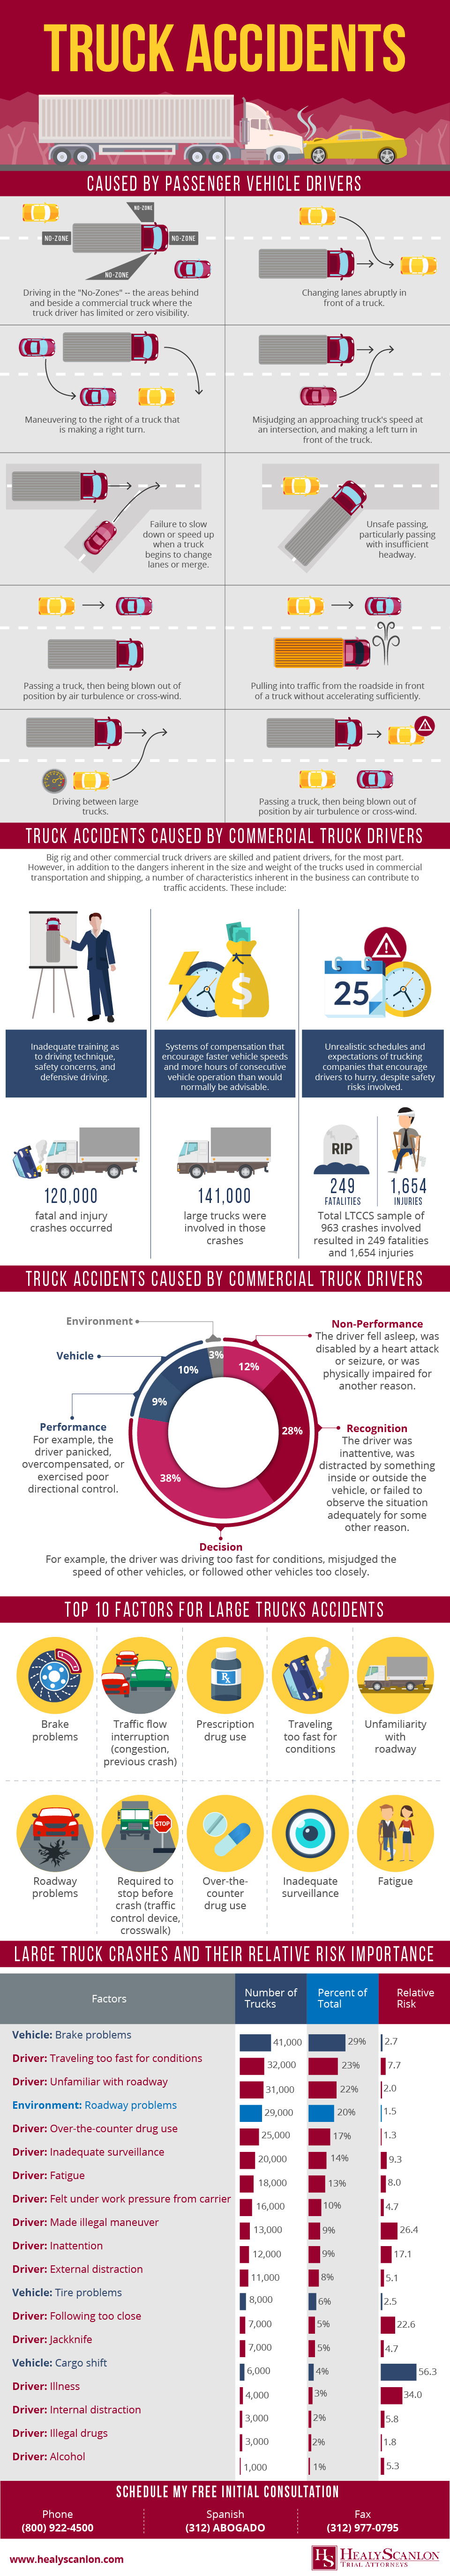 Infographic - Truck Accident